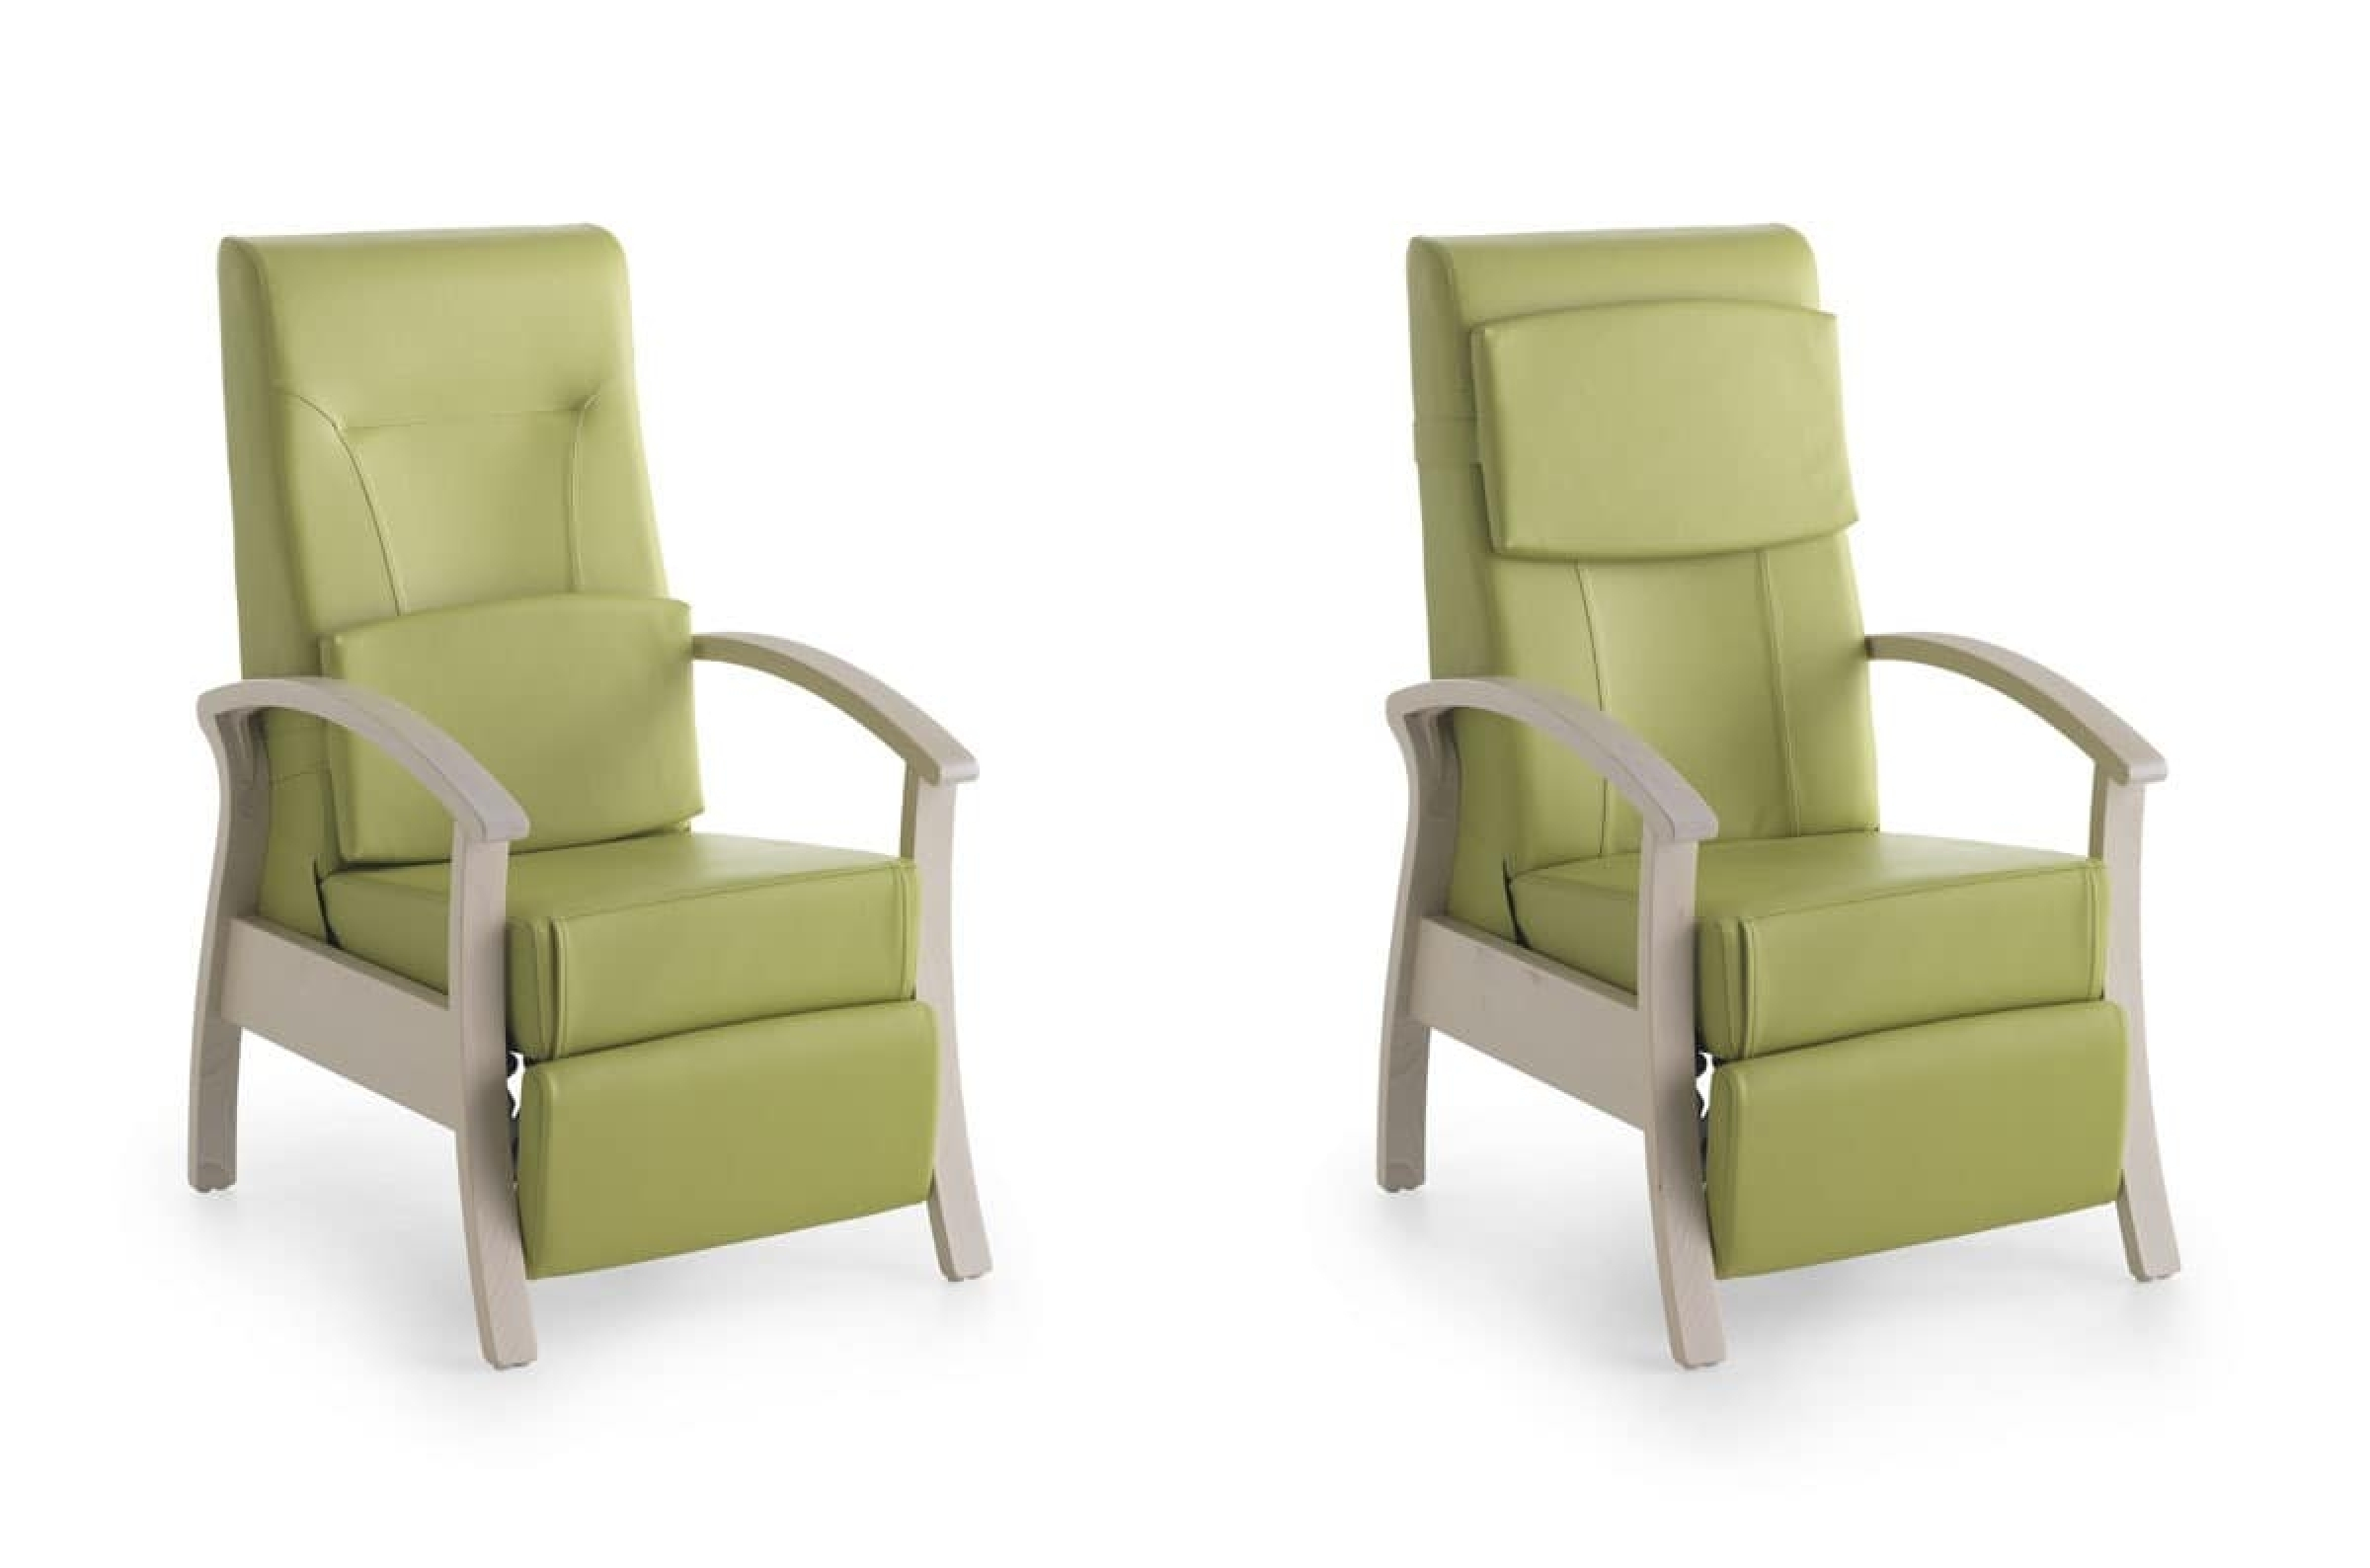 50+ Armchairs For Elderly & Guide How To Choose The Best For Popel Armchairs (View 6 of 15)